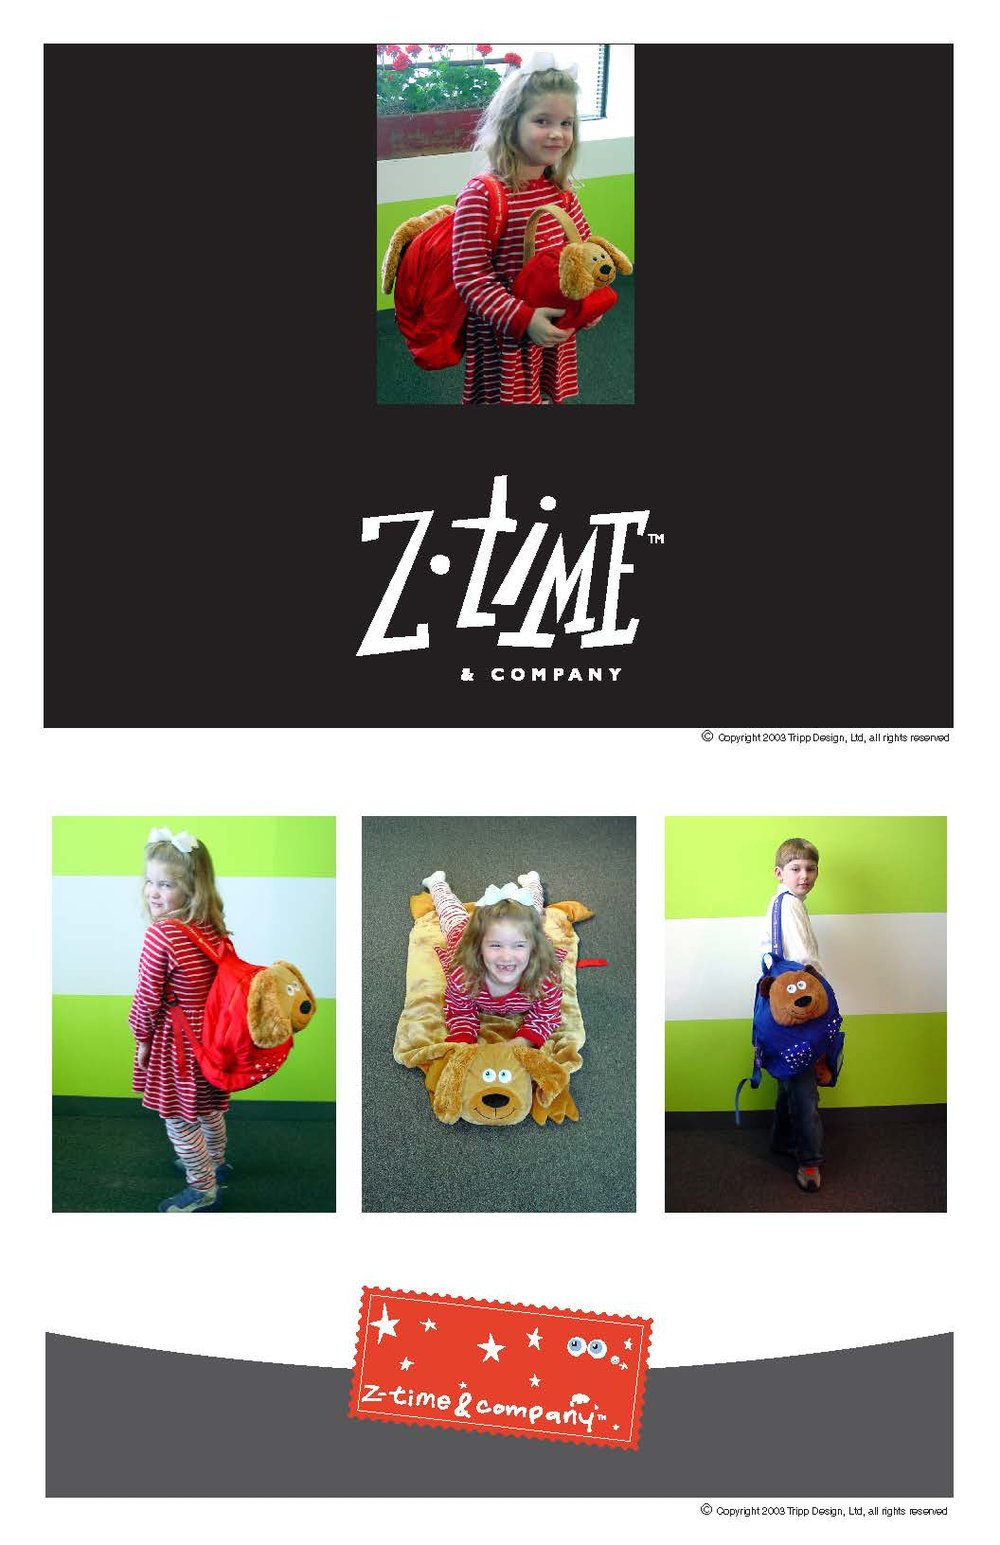 z-time update_Page_01 (1).jpg